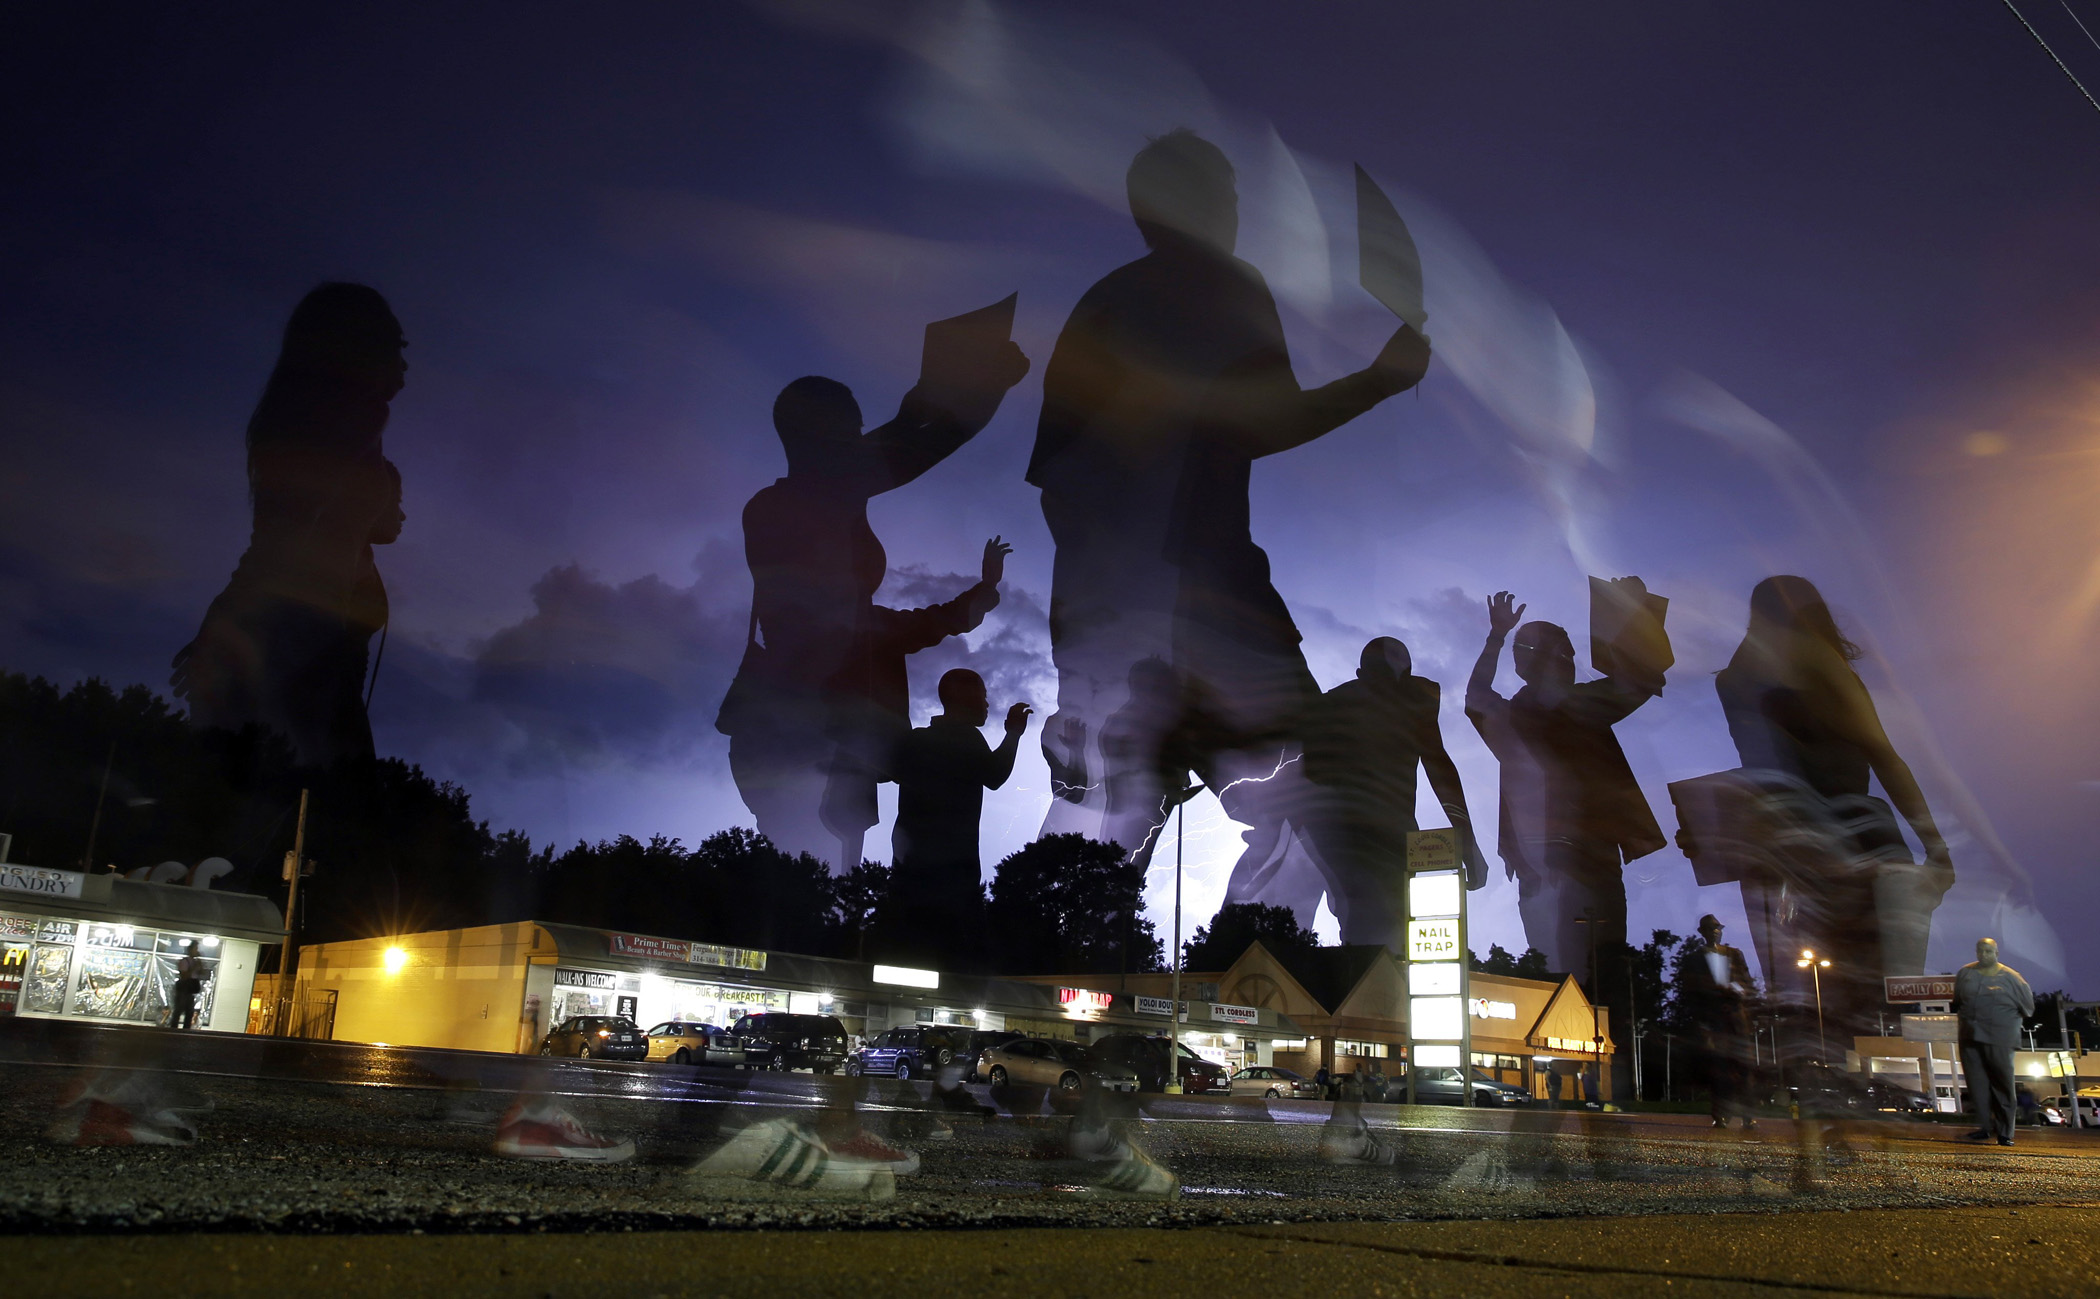 Protesters march in the street as lightning flashes in the distance in Ferguson, Mo, Aug. 20, 2014.